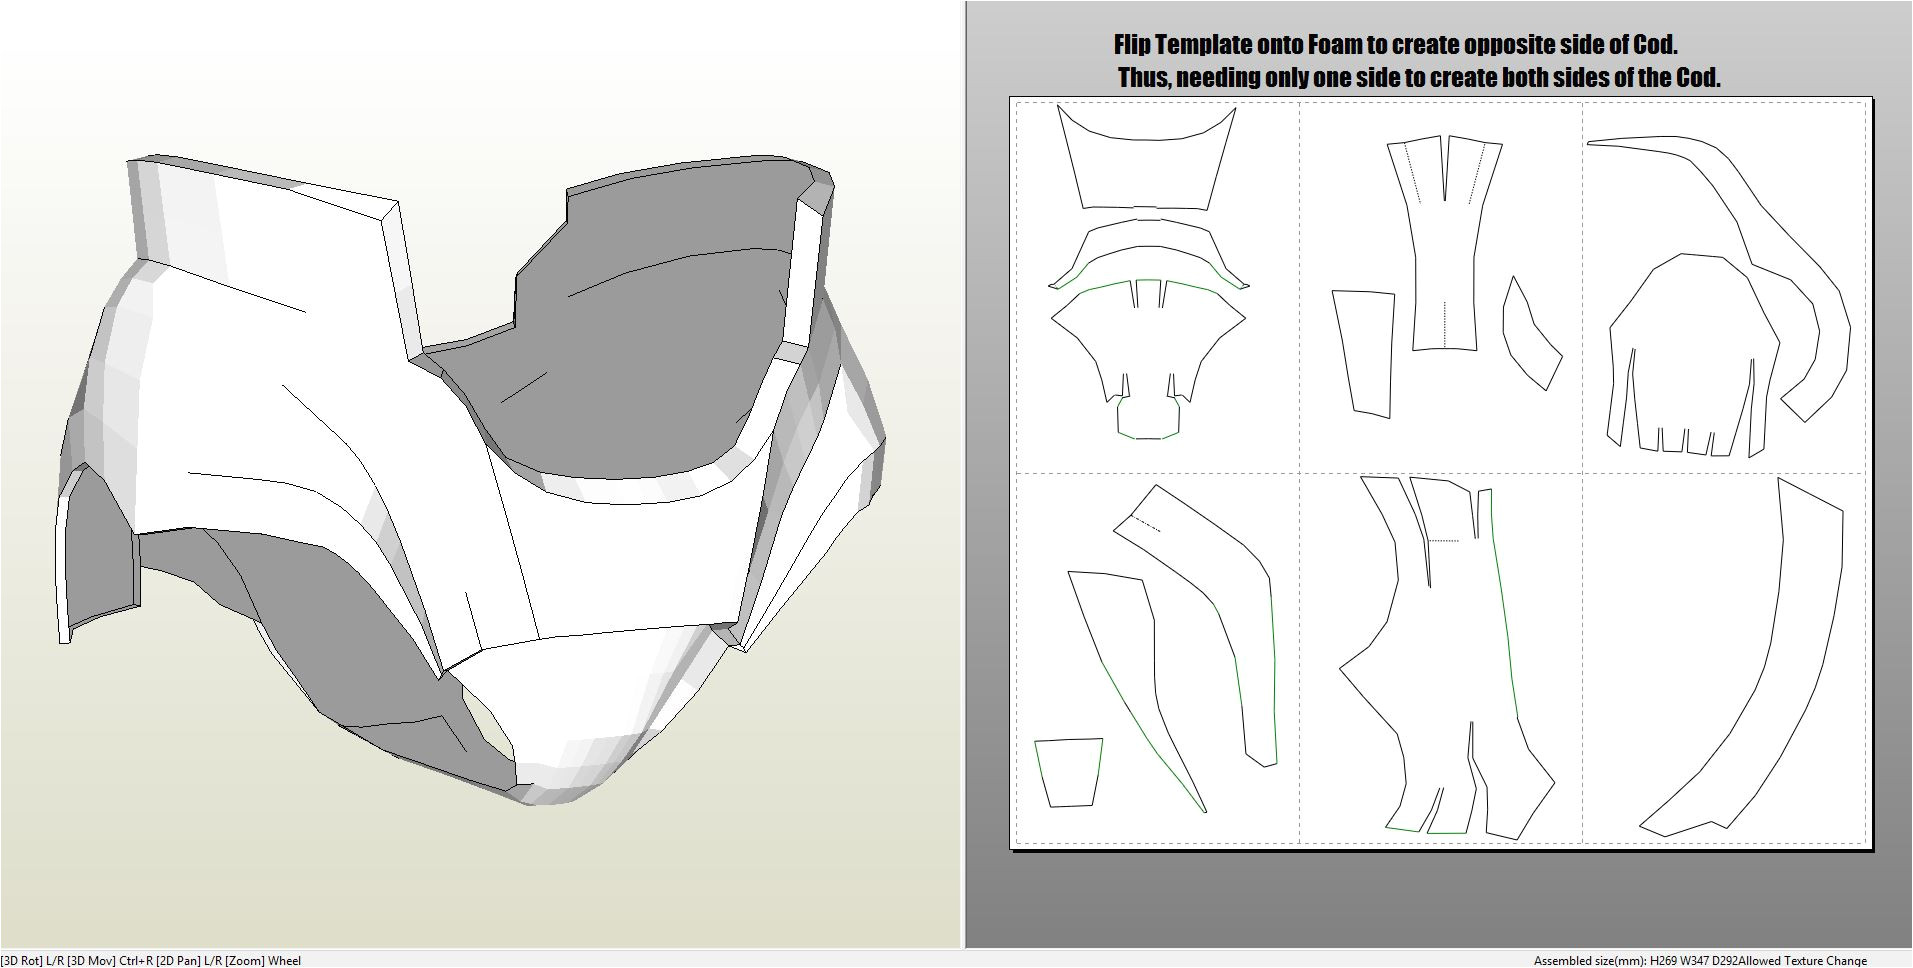 Iron Man Suit Template Foamcraft Pdo File Template for Iron Man Mark 4 6